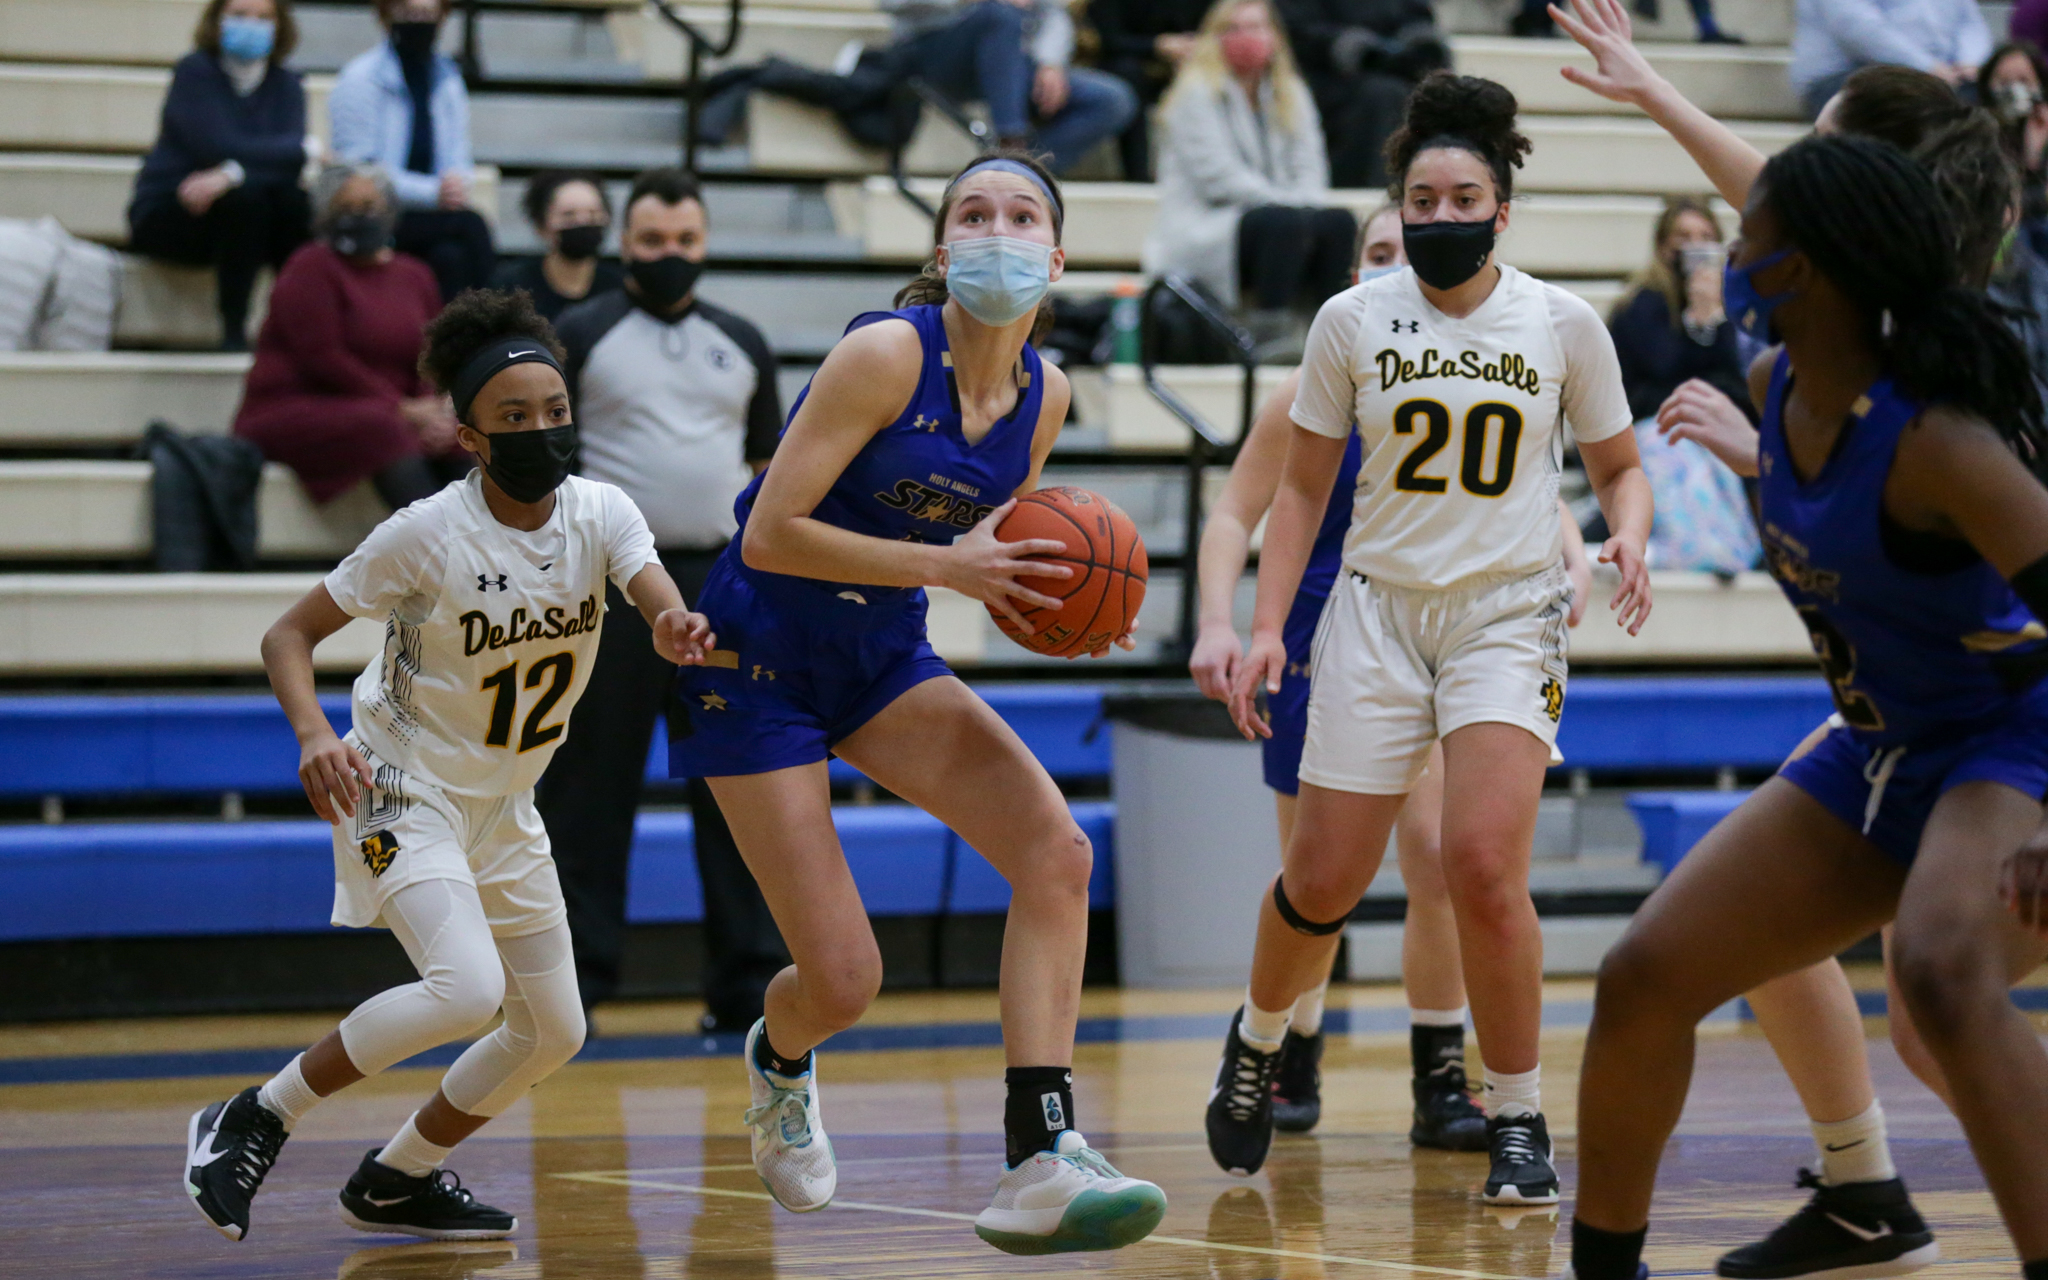 Holy Angels' Francesca Vascellaro (1) drives toward the basket during the first half of Friday night's game against DeLaSalle. Vascellaro had a game-high 24 points in the Stars' 96-69 victory over the Islanders. Photo by Jeff Lawler, SportsEngine